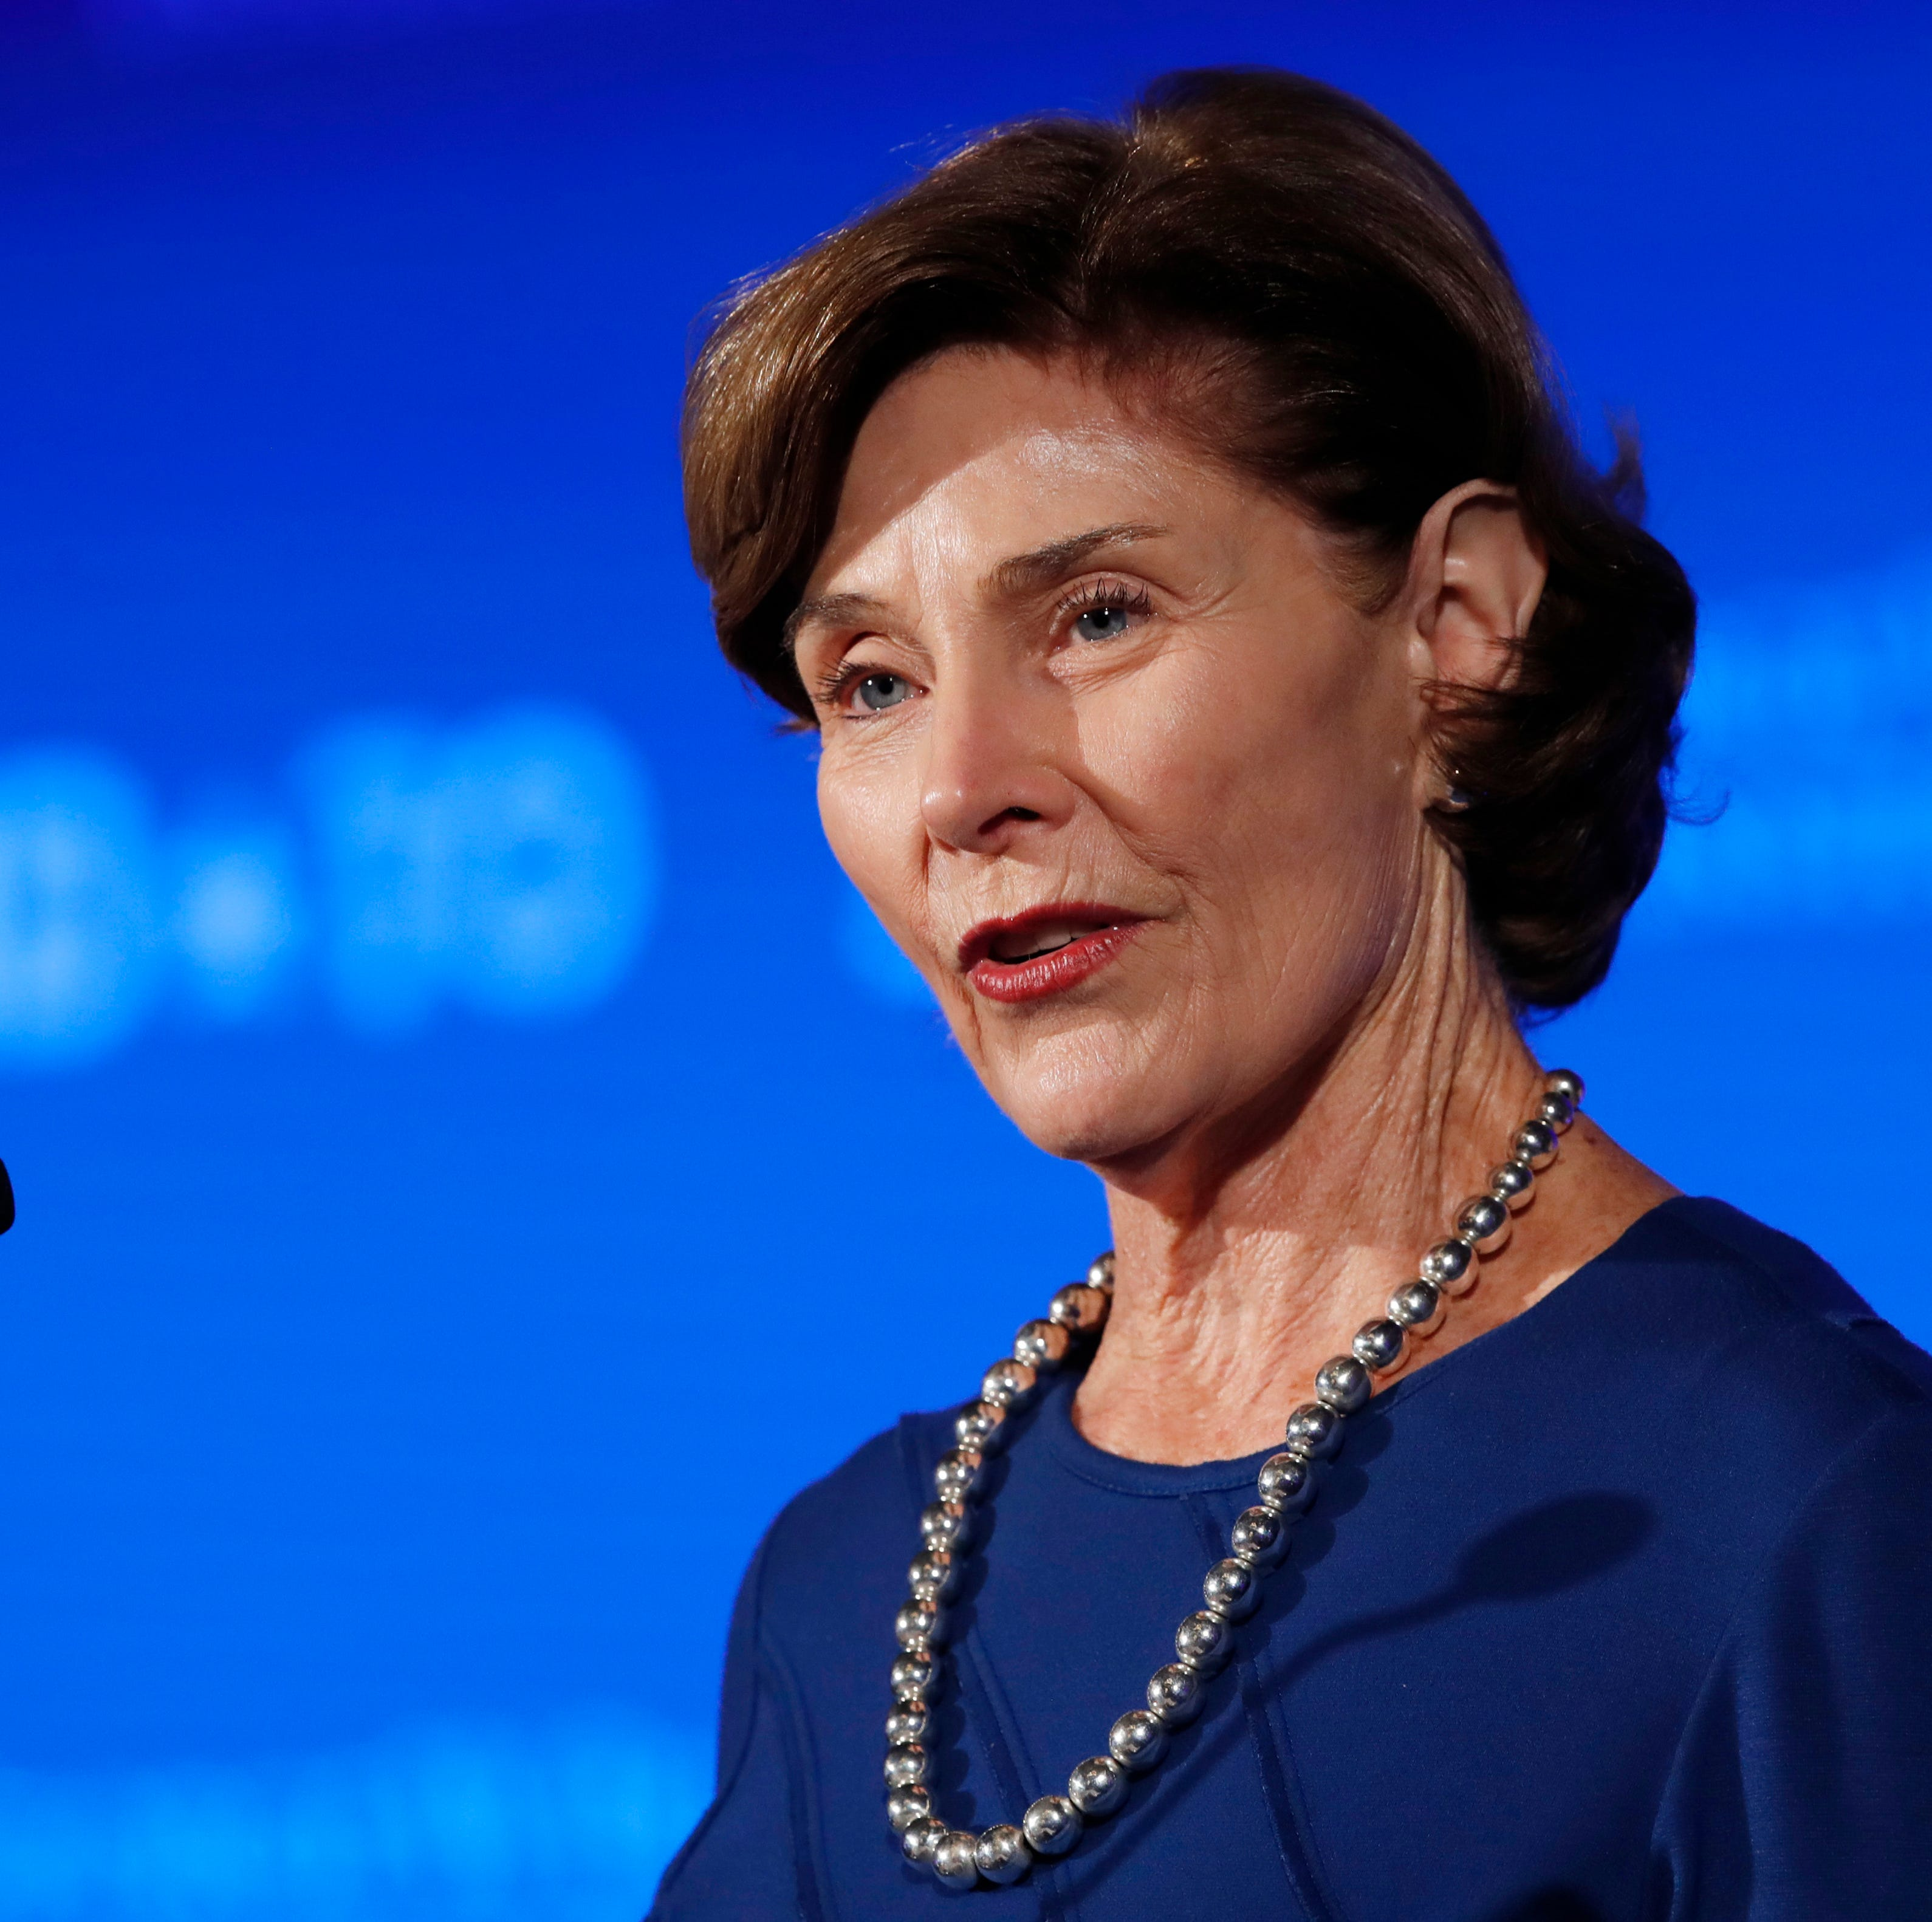 Former first lady Laura Bush reflects on time in White House at conference in Naples